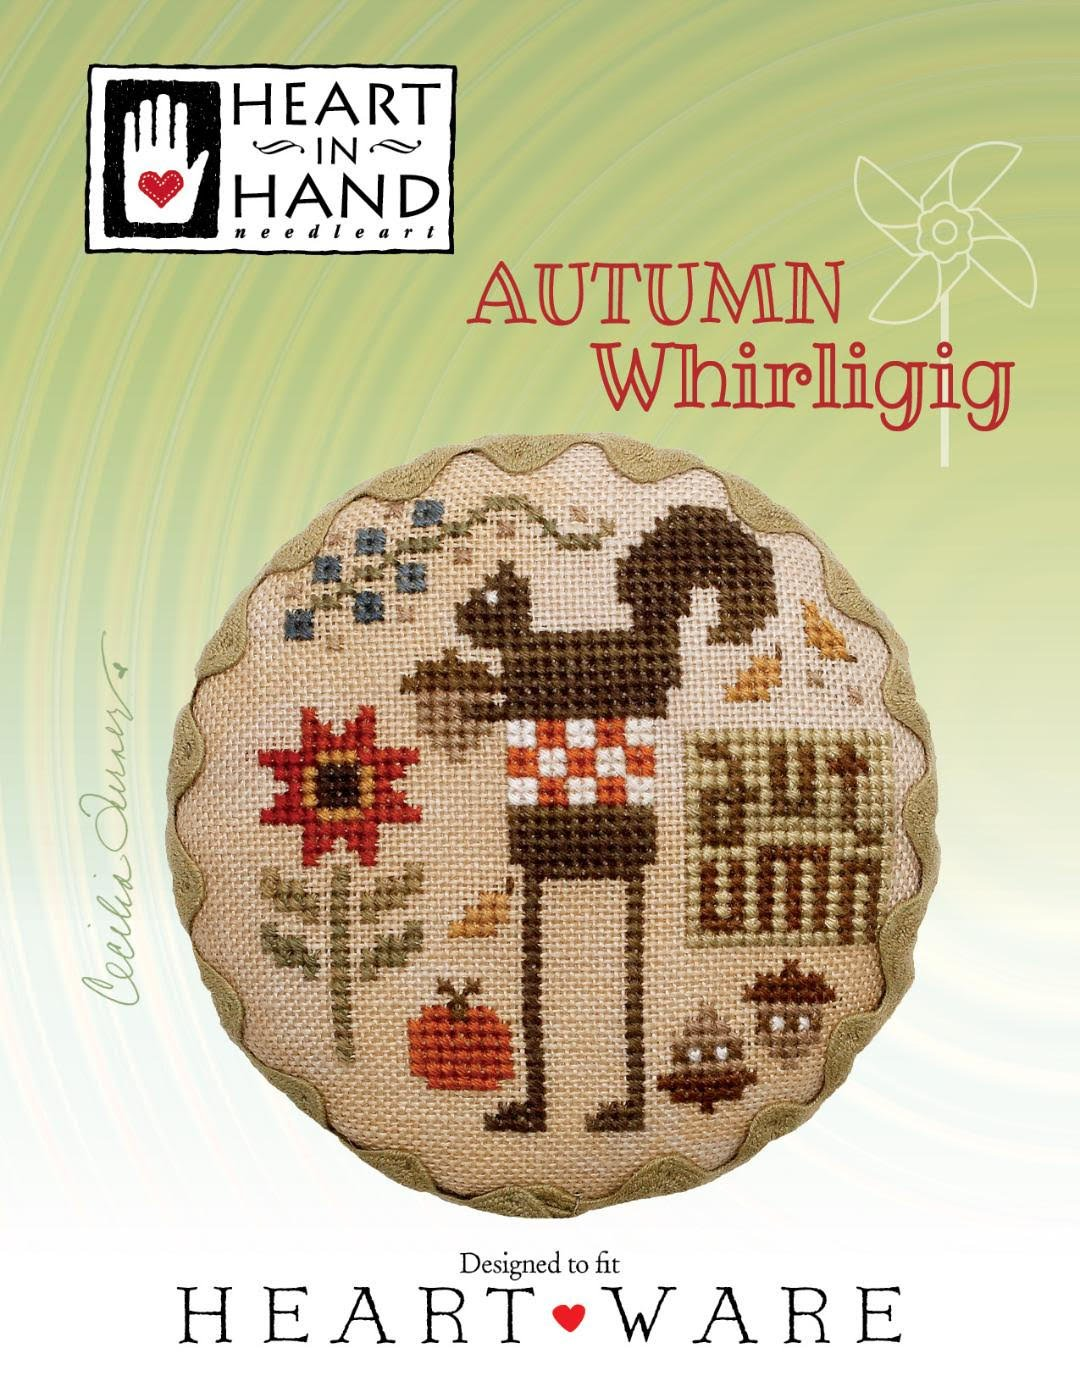 Heart in Hand - Autumn Whirligig